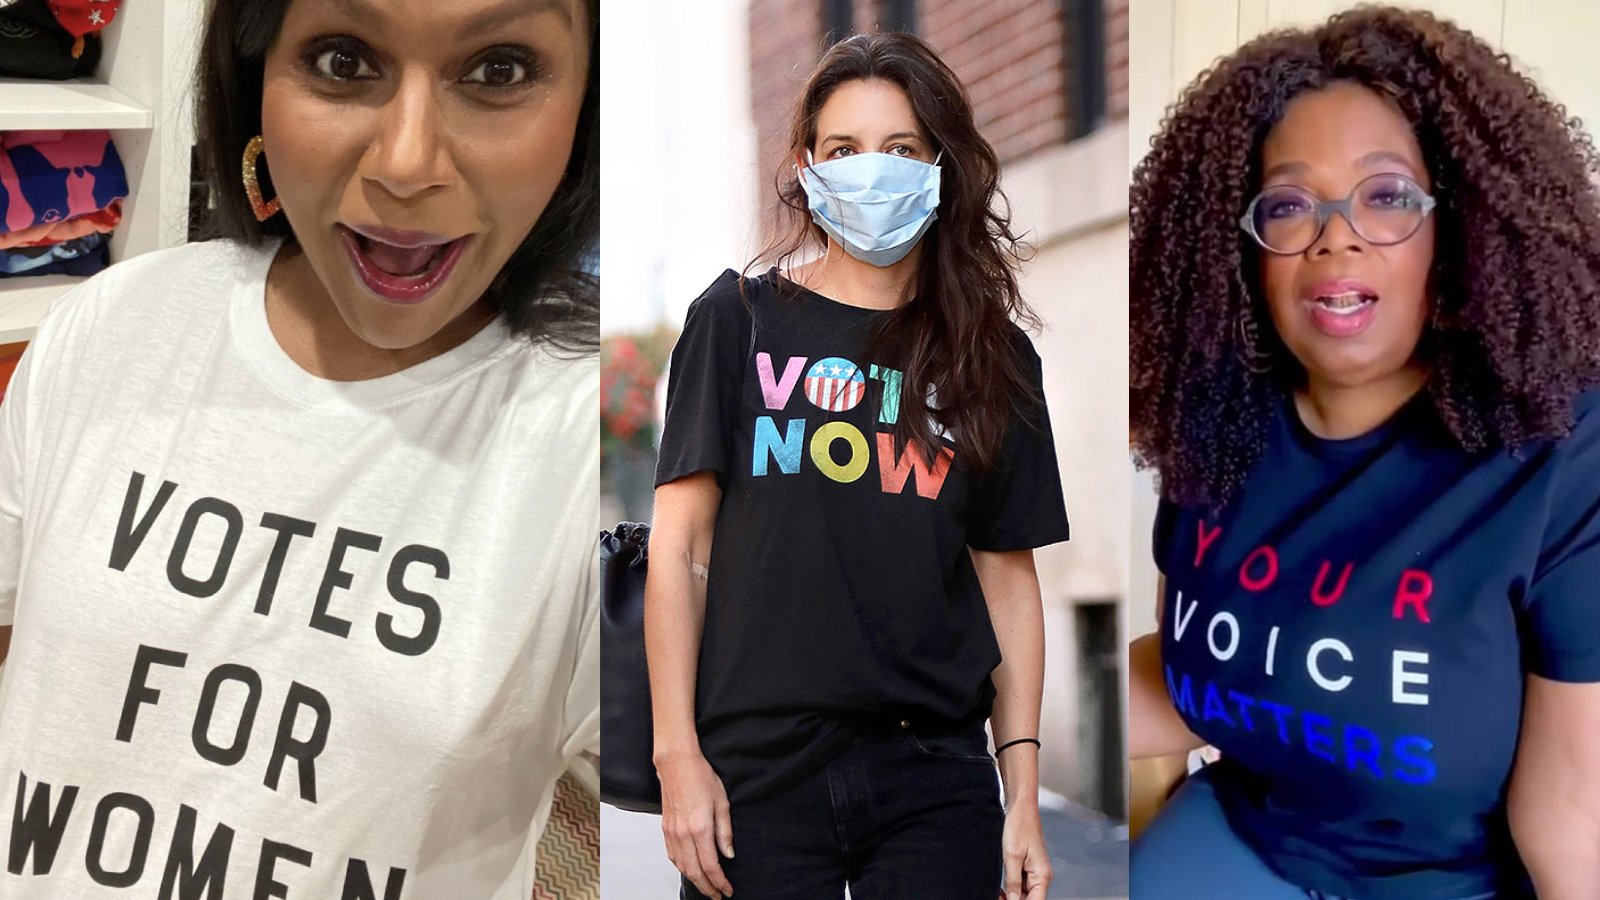 Where to buy 'vote' merch, as seen on Taylor Swift, Hailey Bieber, and more